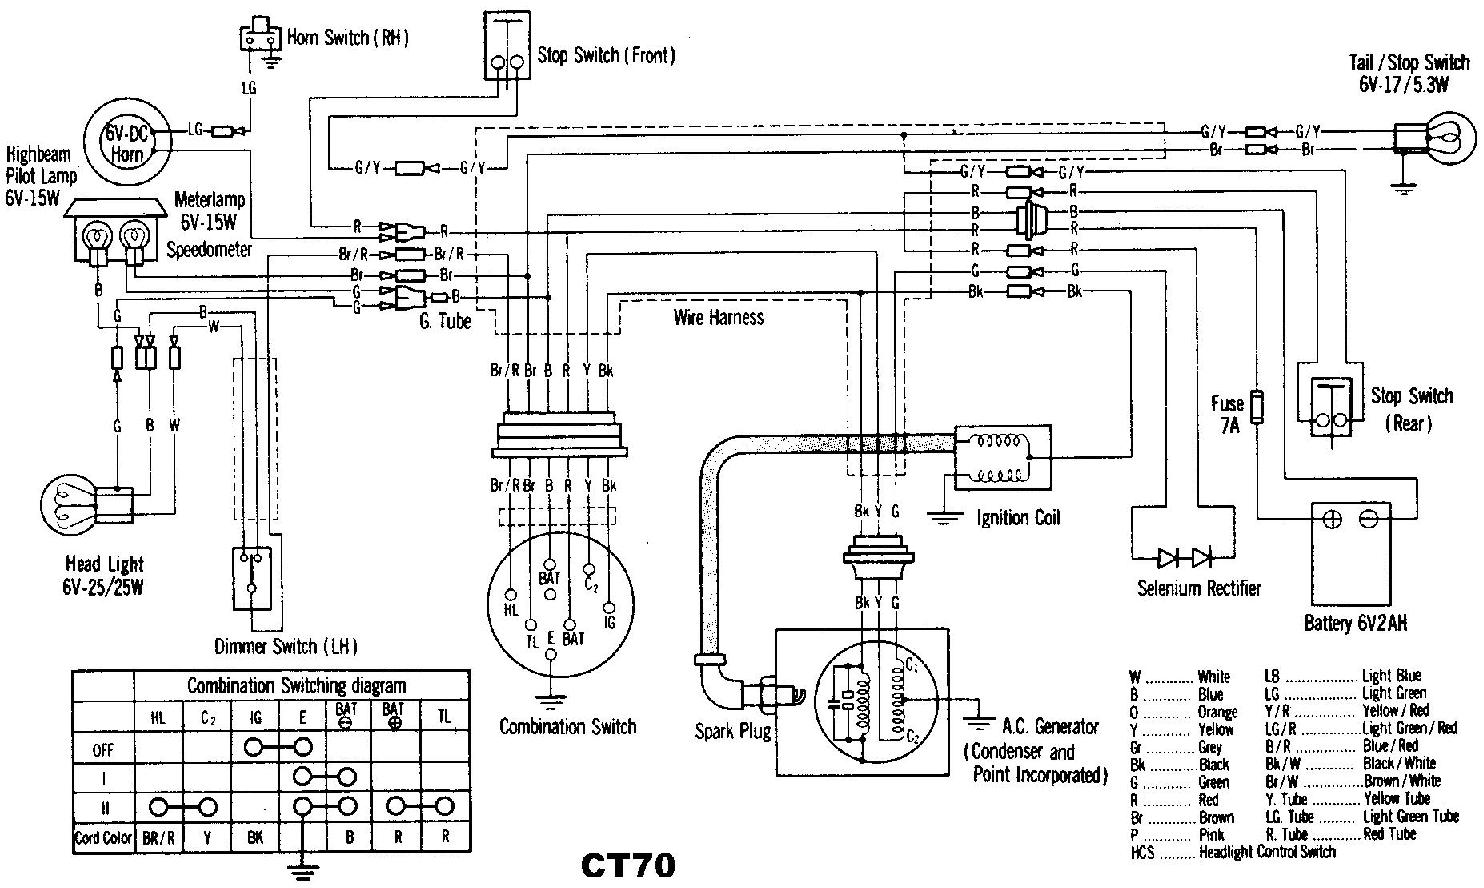 dratv_2269_123803613 honda trail 70 wiring diagram honda ct90 wiring diagram \u2022 wiring honda ct70 wiring diagram at bayanpartner.co